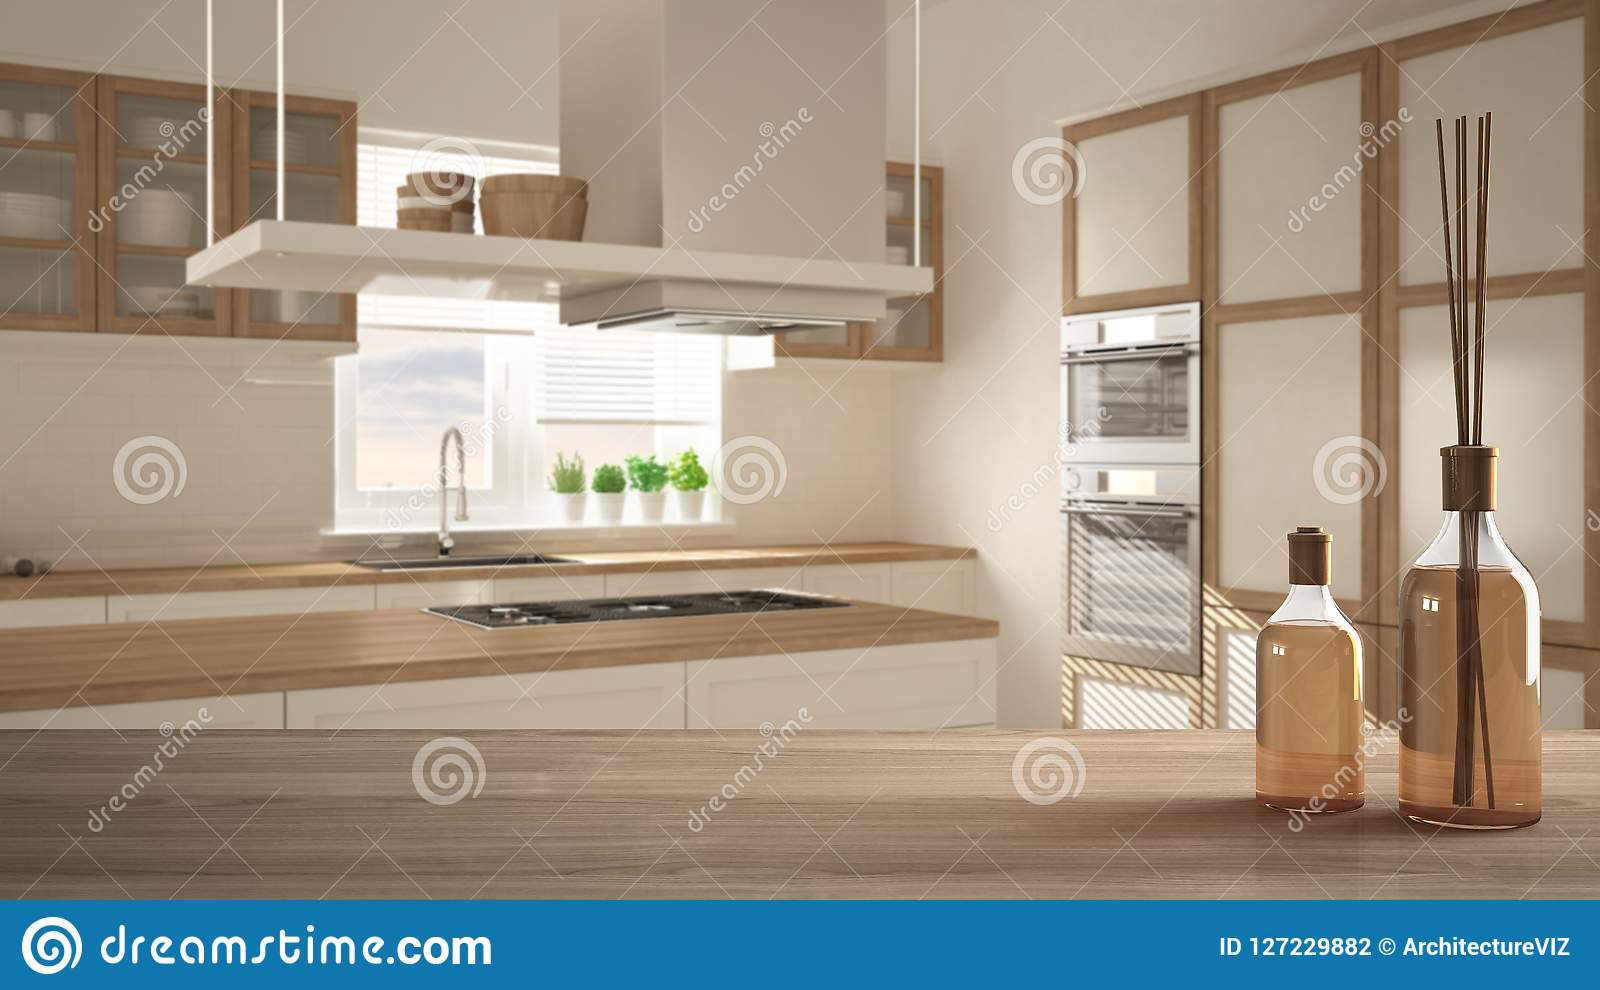 Wooden Table Top Or Shelf With Aromatic Sticks Bottles Over Blurred Modern Kitchen With Island White Architecture Interior Stock Illustration Illustration Of Aromatic Table 127229882